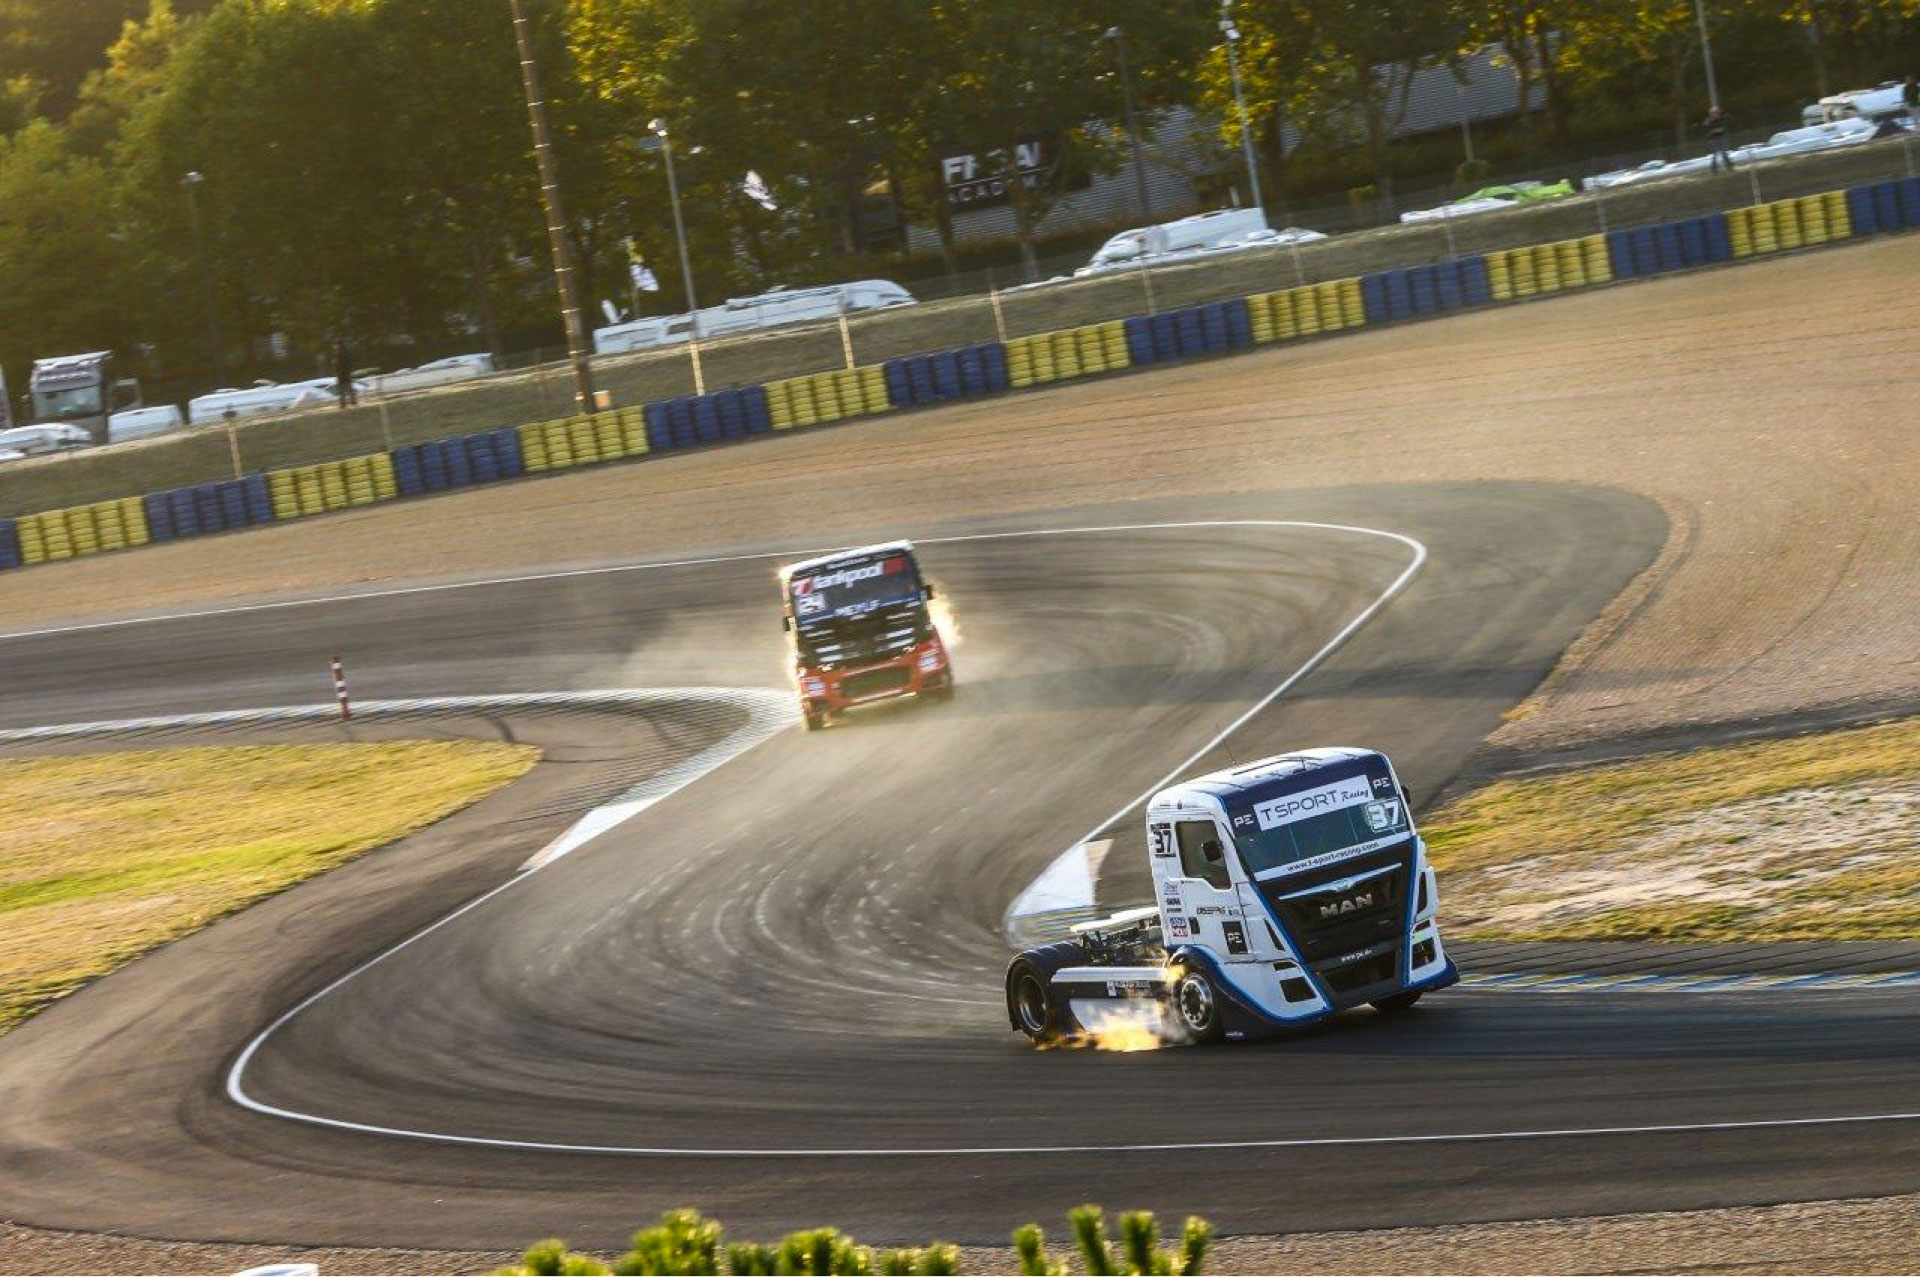 T Sport Racing achieves three podium positions at Le Mans at Truck Racing European Championship